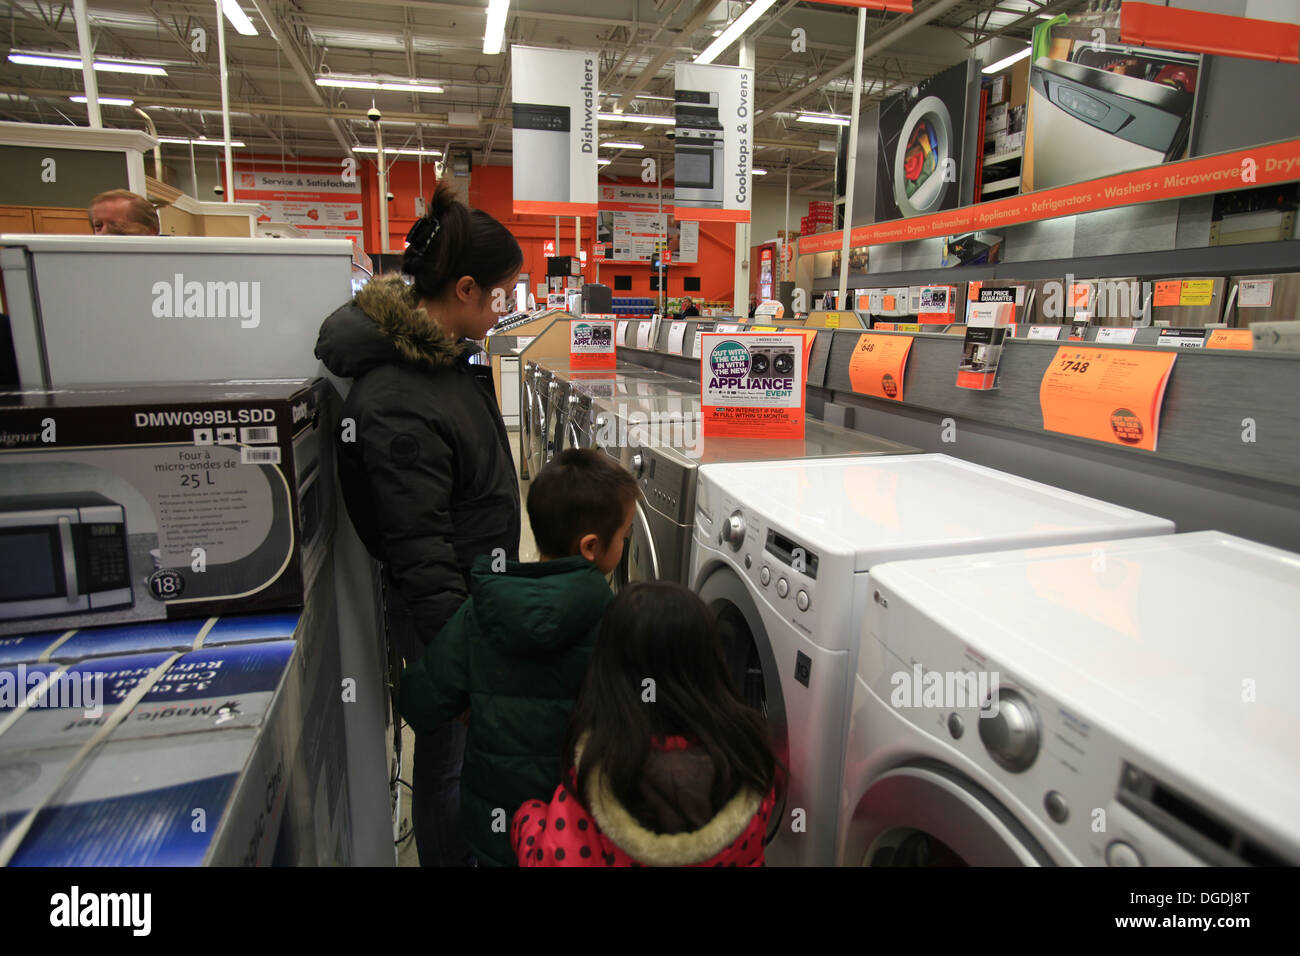 Electric washing machines and dryers for sale in The Home